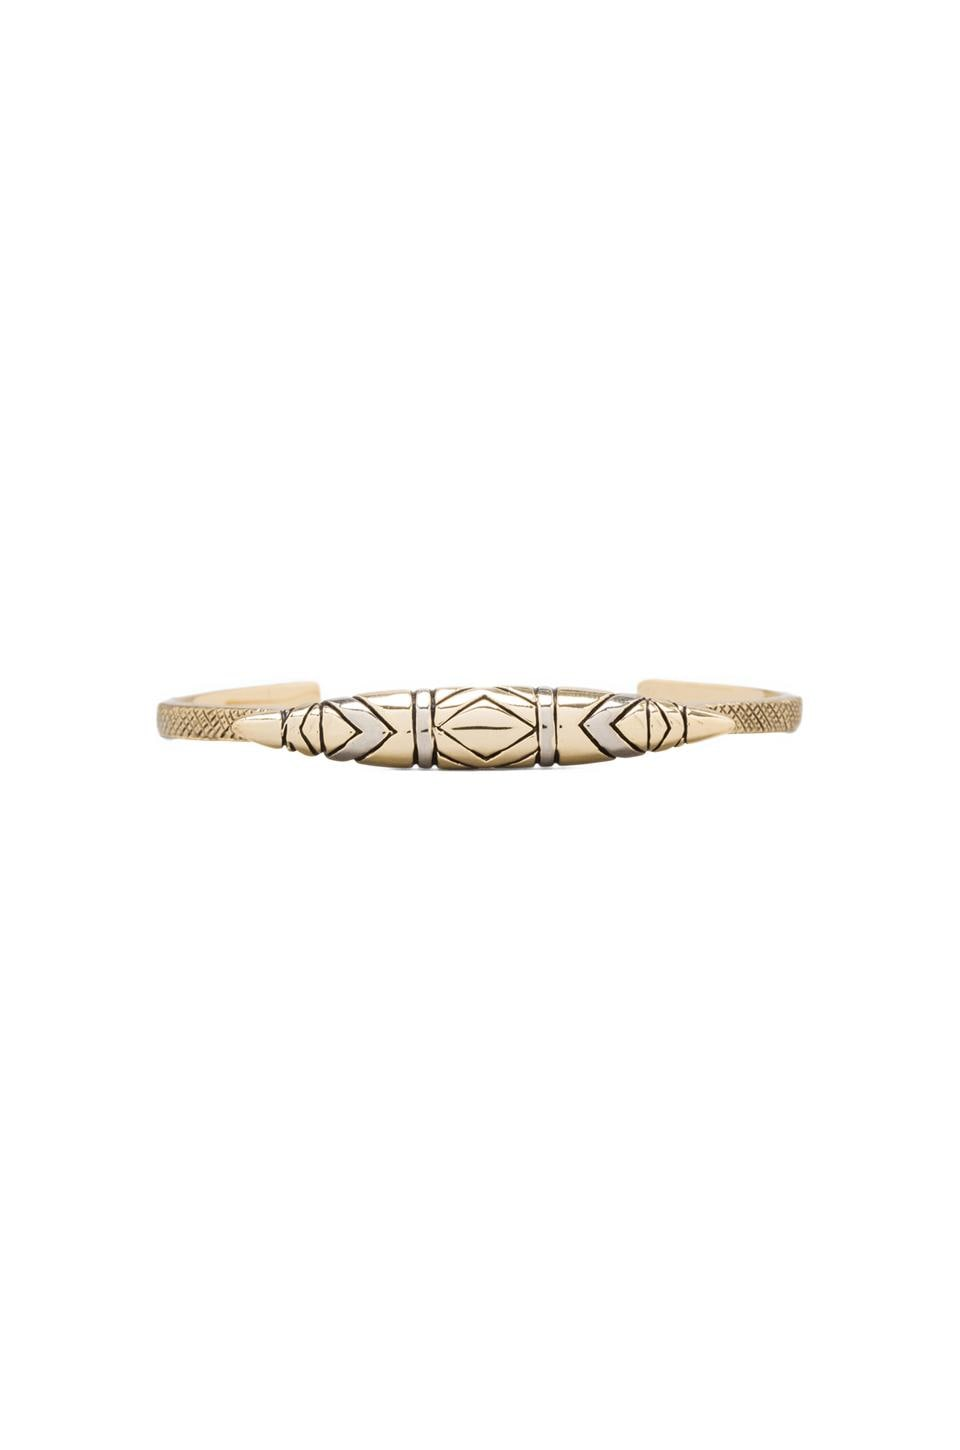 House of Harlow 1960 House of Harlow Tribal Totem Cuff in Two Tone